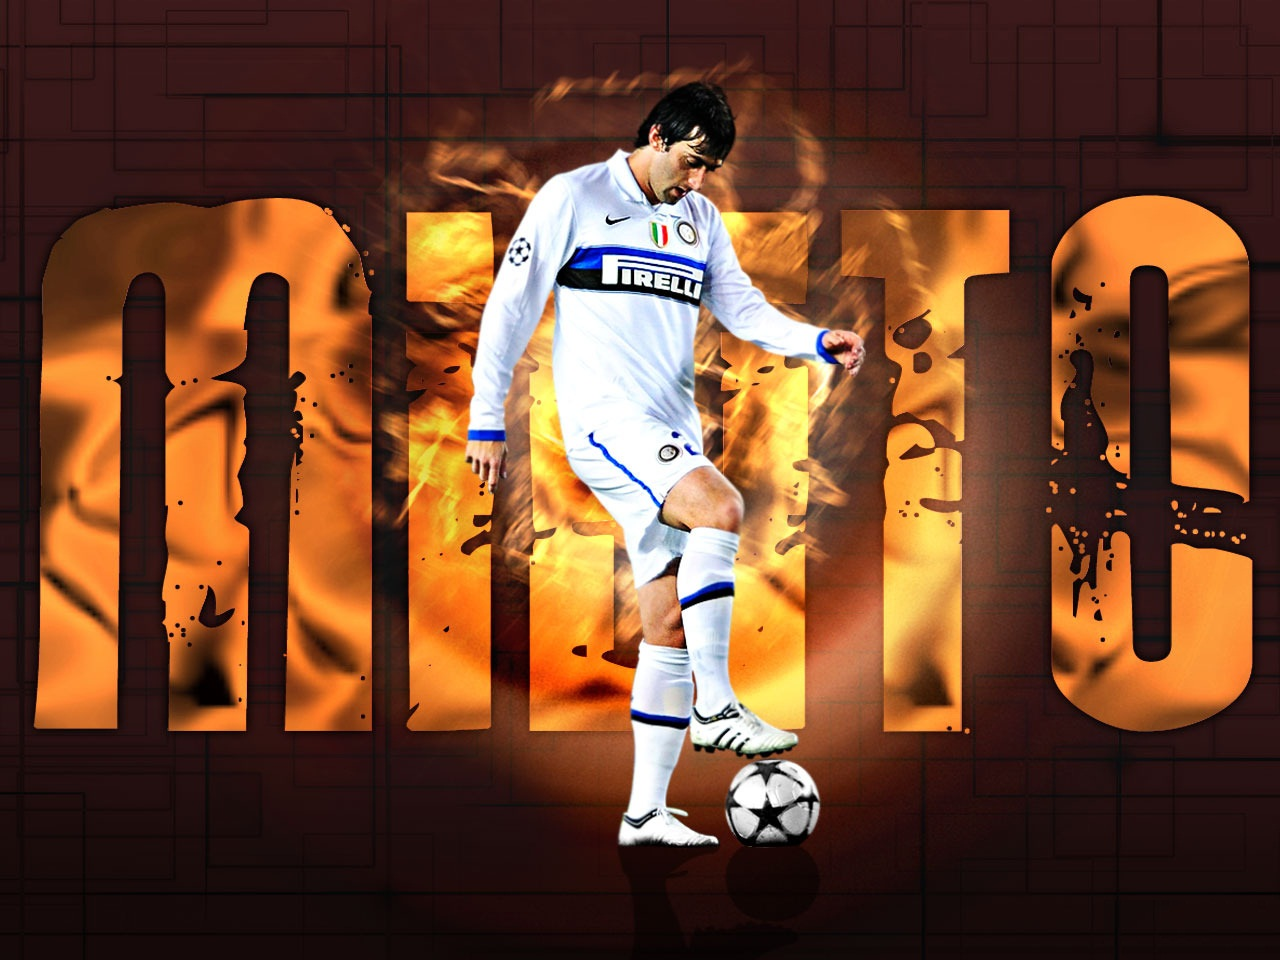 inter milan wallpaper 2012 - photo #31